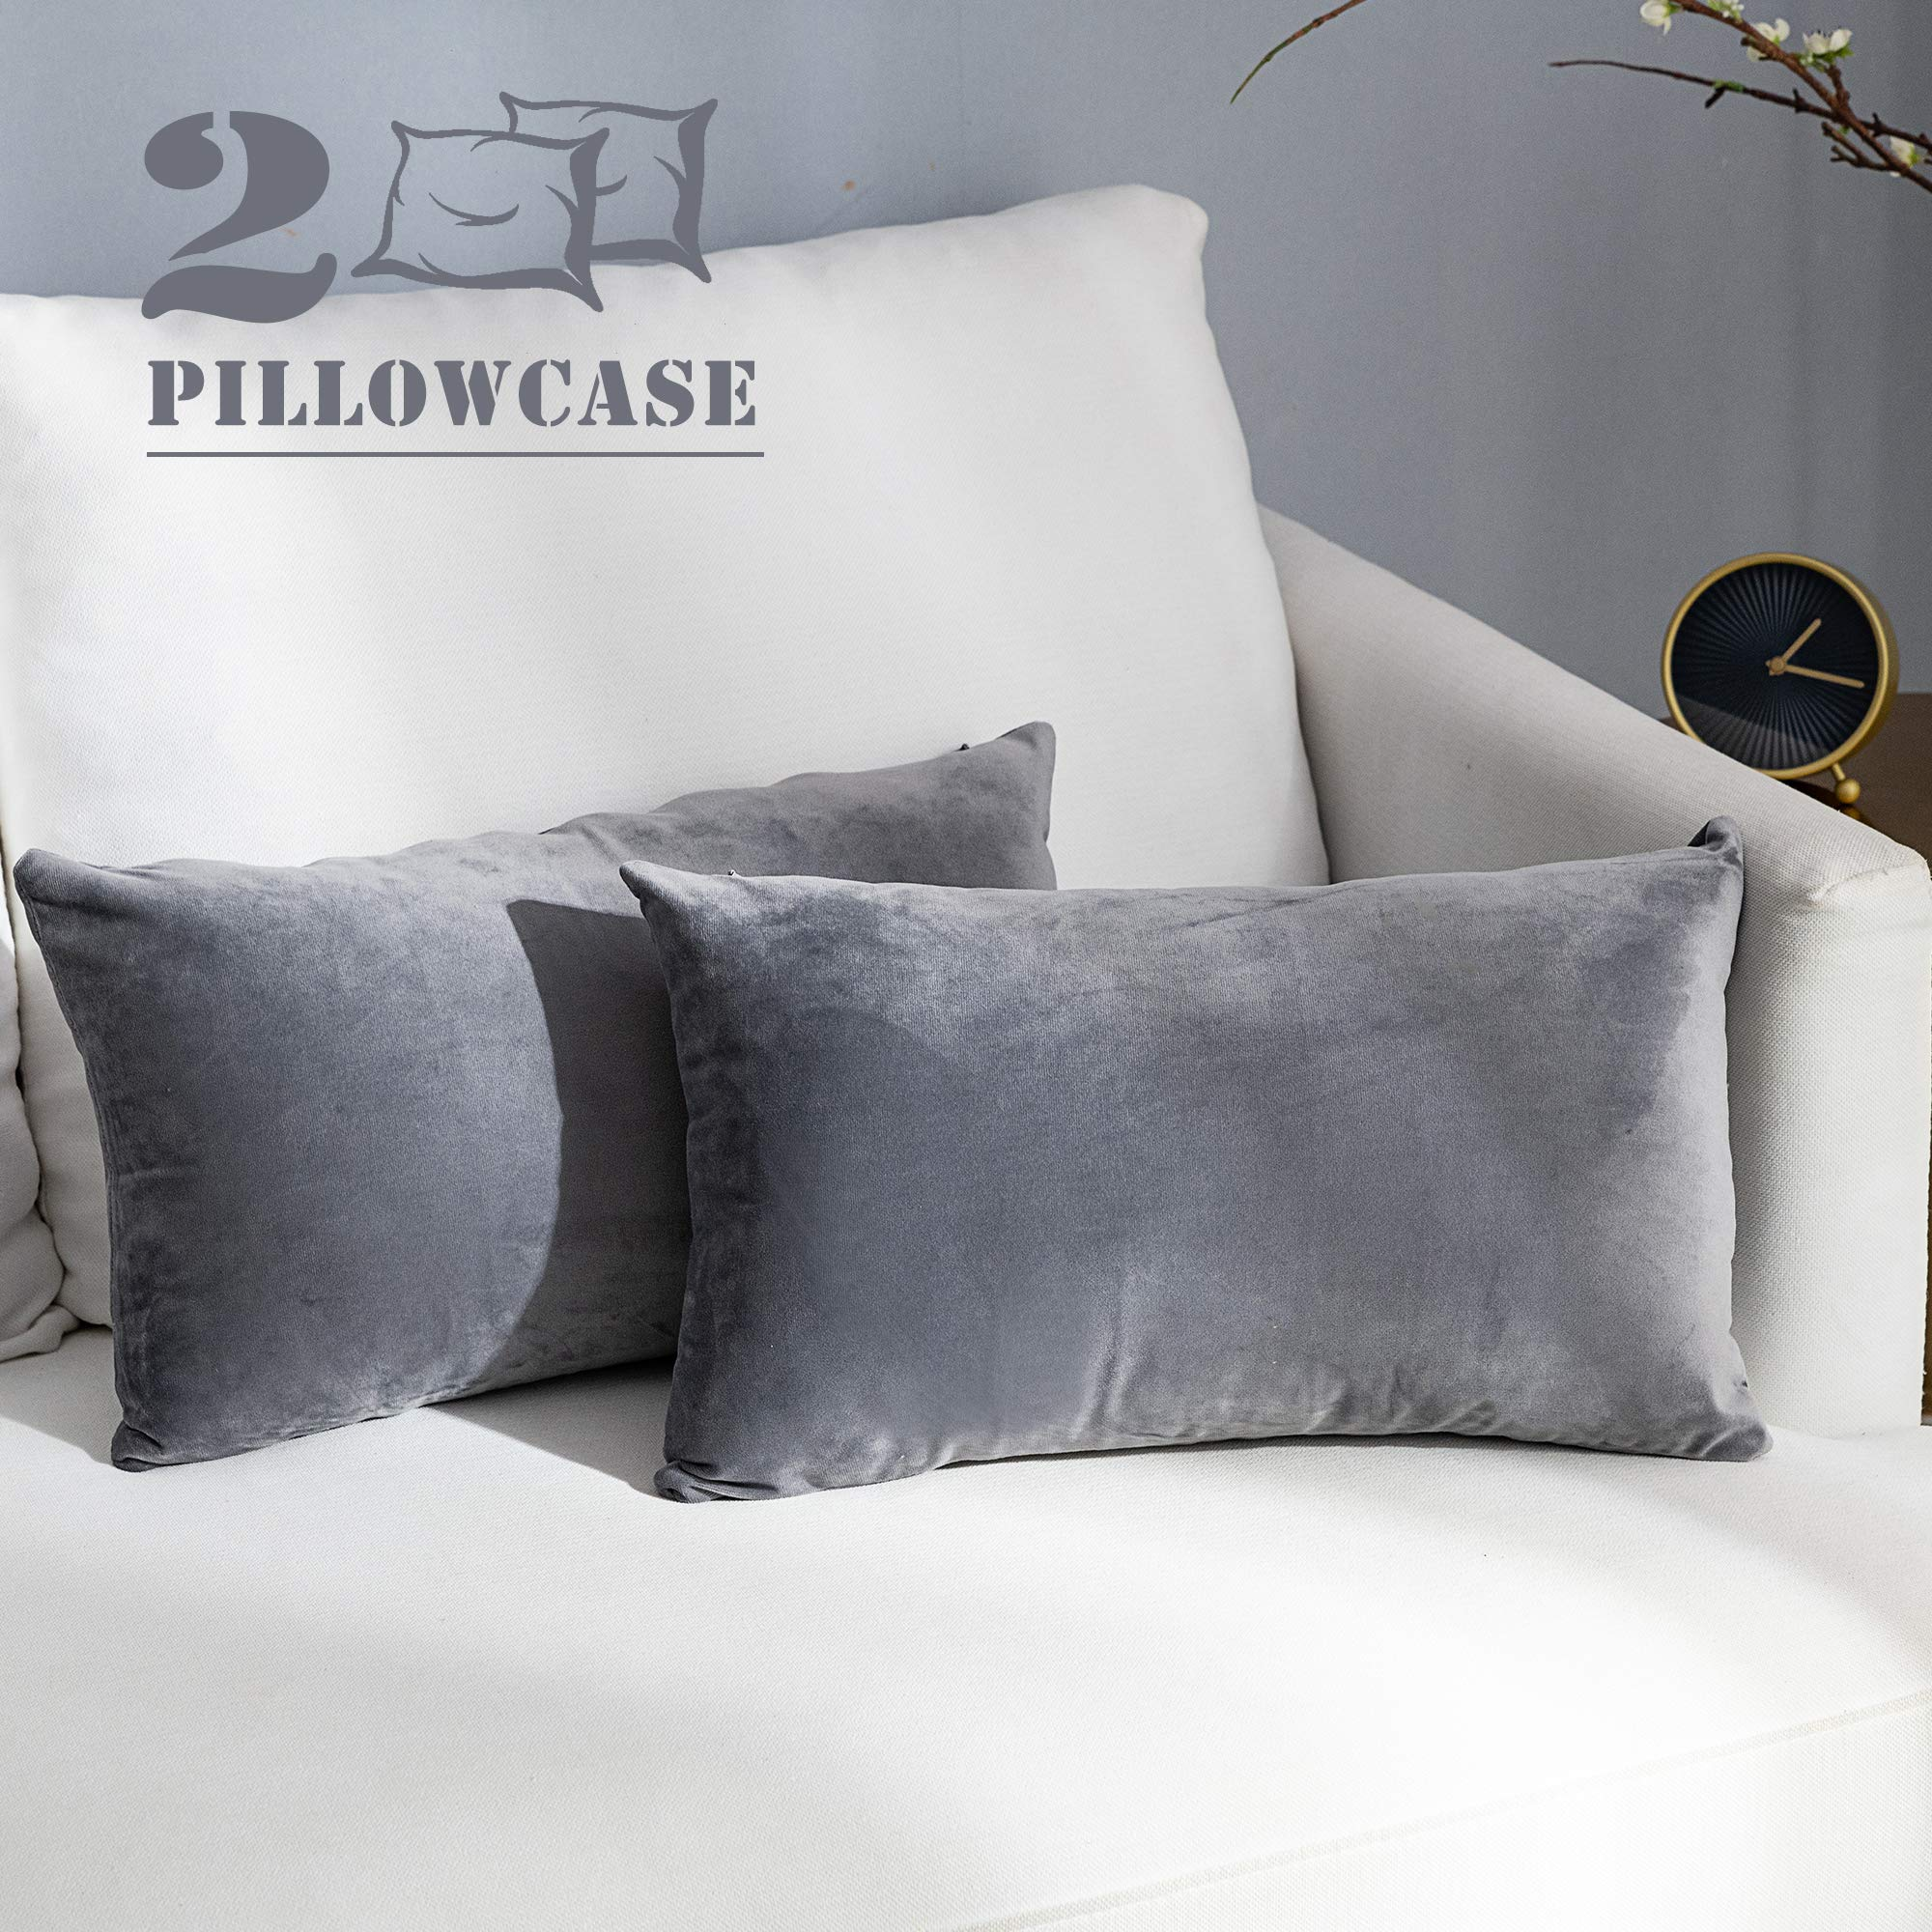 NANPIPER Set of 2 Velvet Soft Decorative Cushion Throw Pillow Covers 12x20 Inch/30x50 cm Cozy Solid Velvet Square Pillowcase Cushion Covers Grey for Couch and Bed